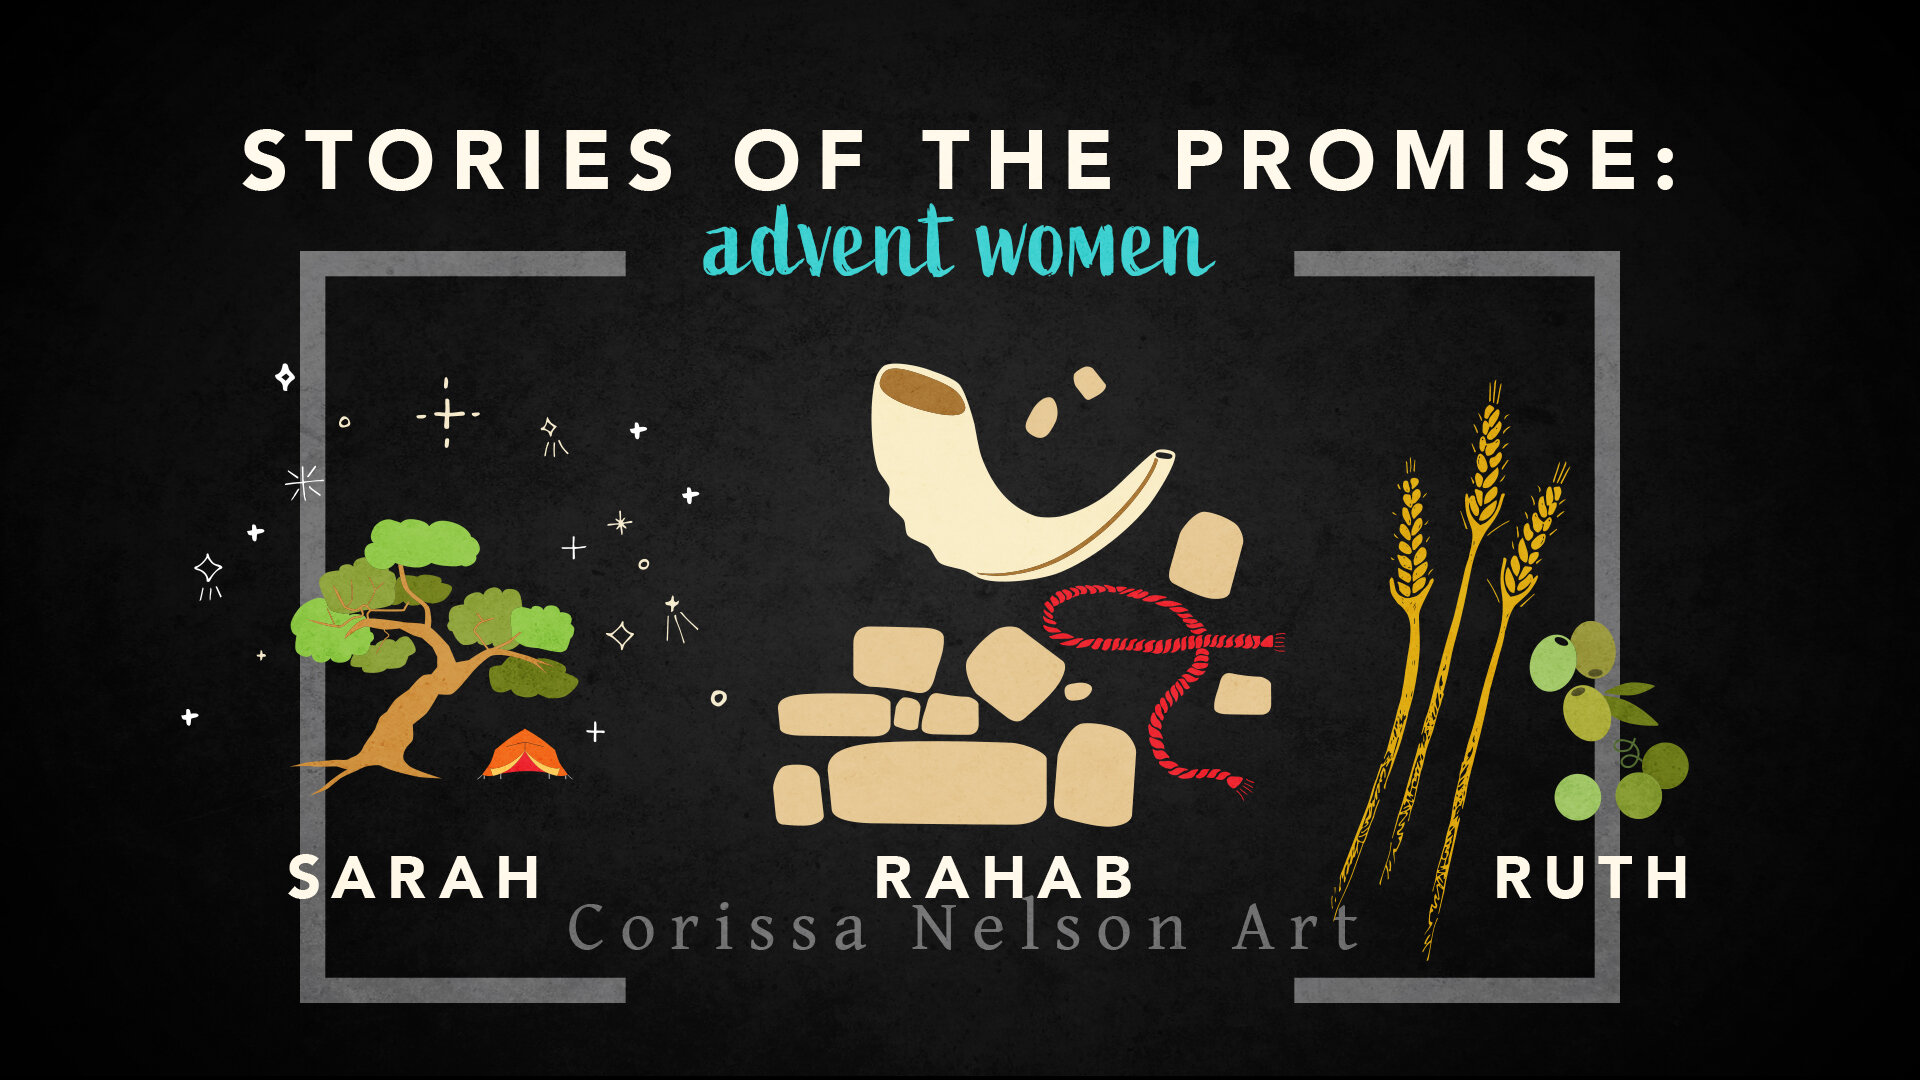 NEW! Advent Midweek Series, Non-liturgical, but compatible with Year A Advent Series, Stories of the Promise